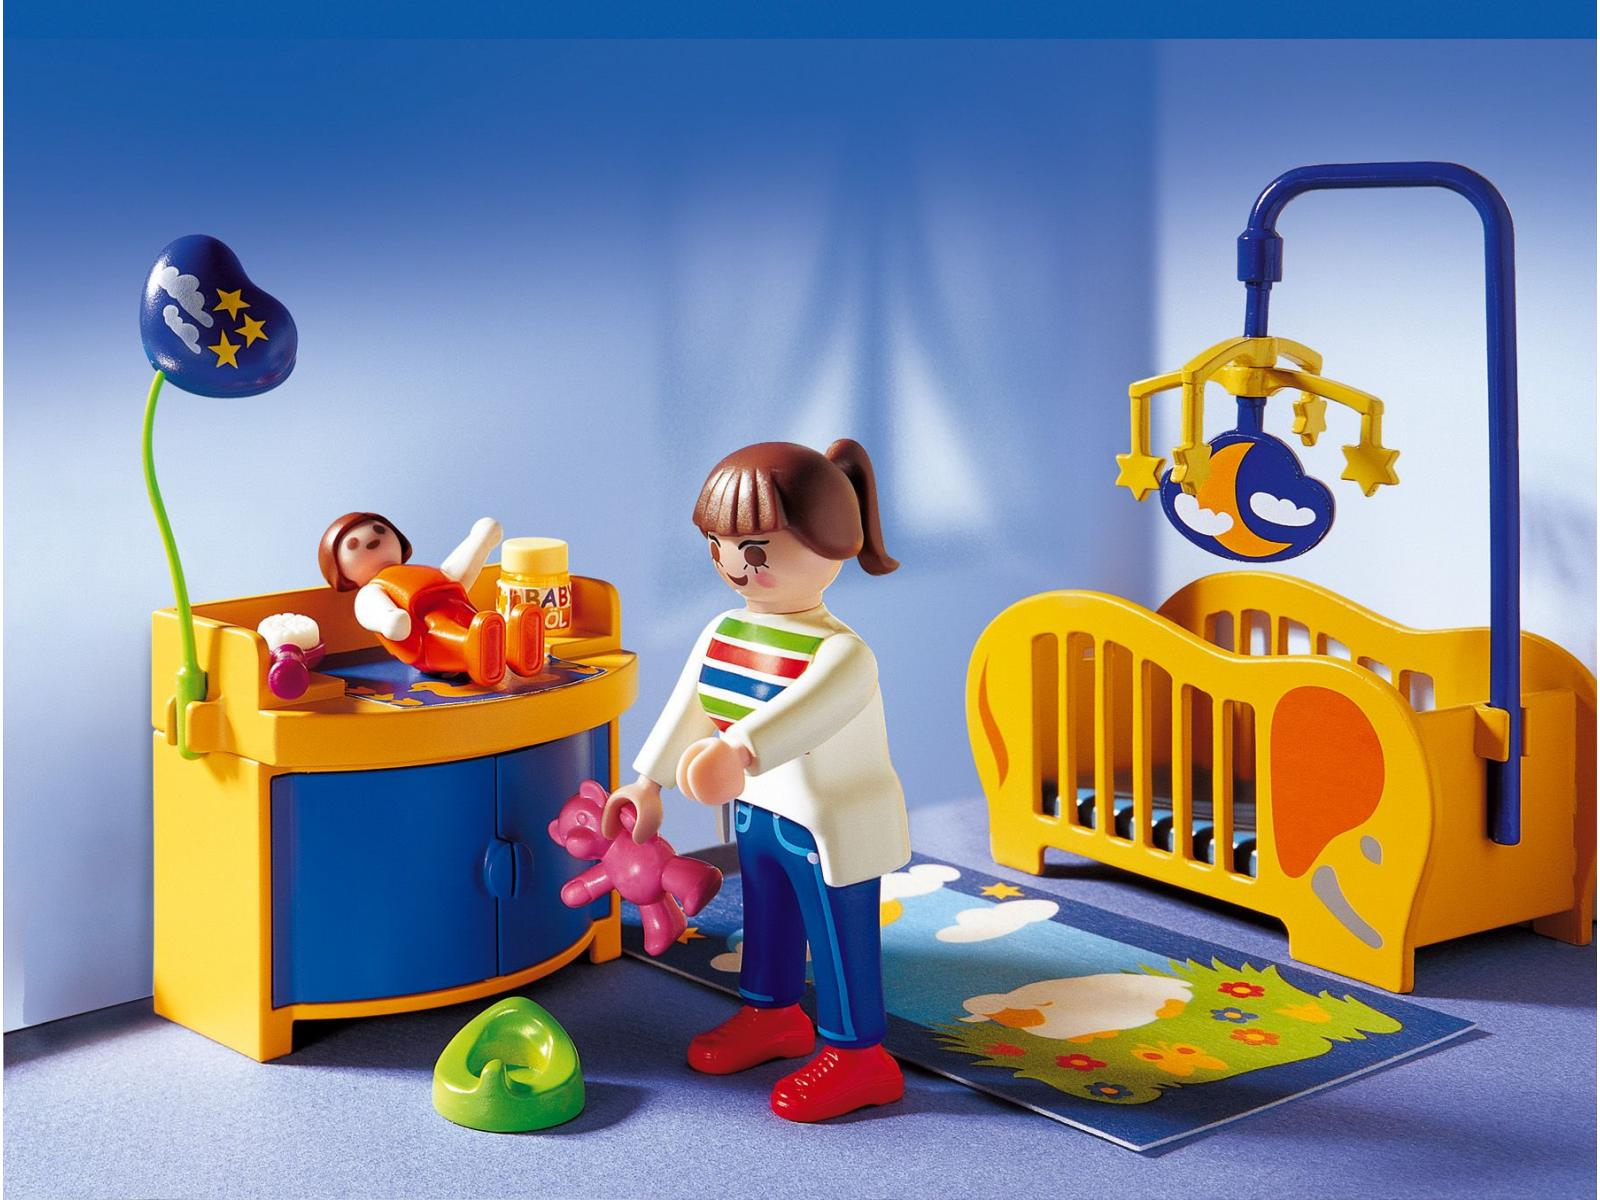 Playmobil chambre gallery of chambre enfants maison munencas playmobil with playmobil chambre - Chambre parents playmobil ...